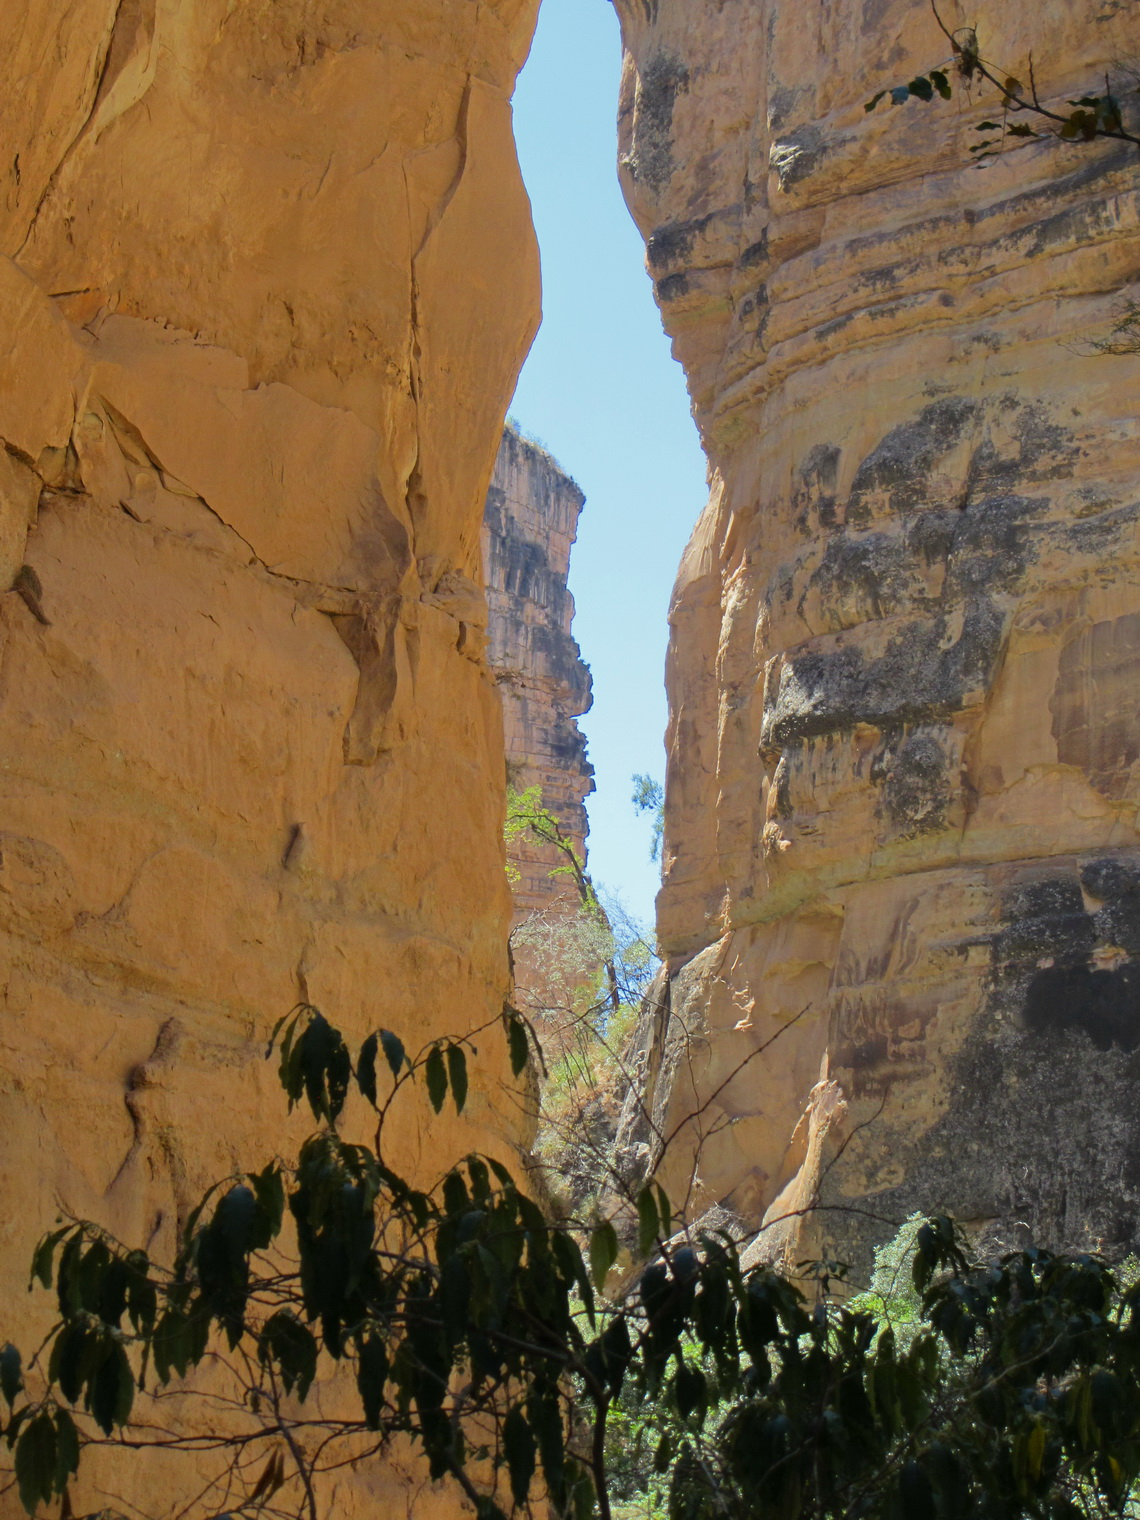 Very steep and narrow canyon